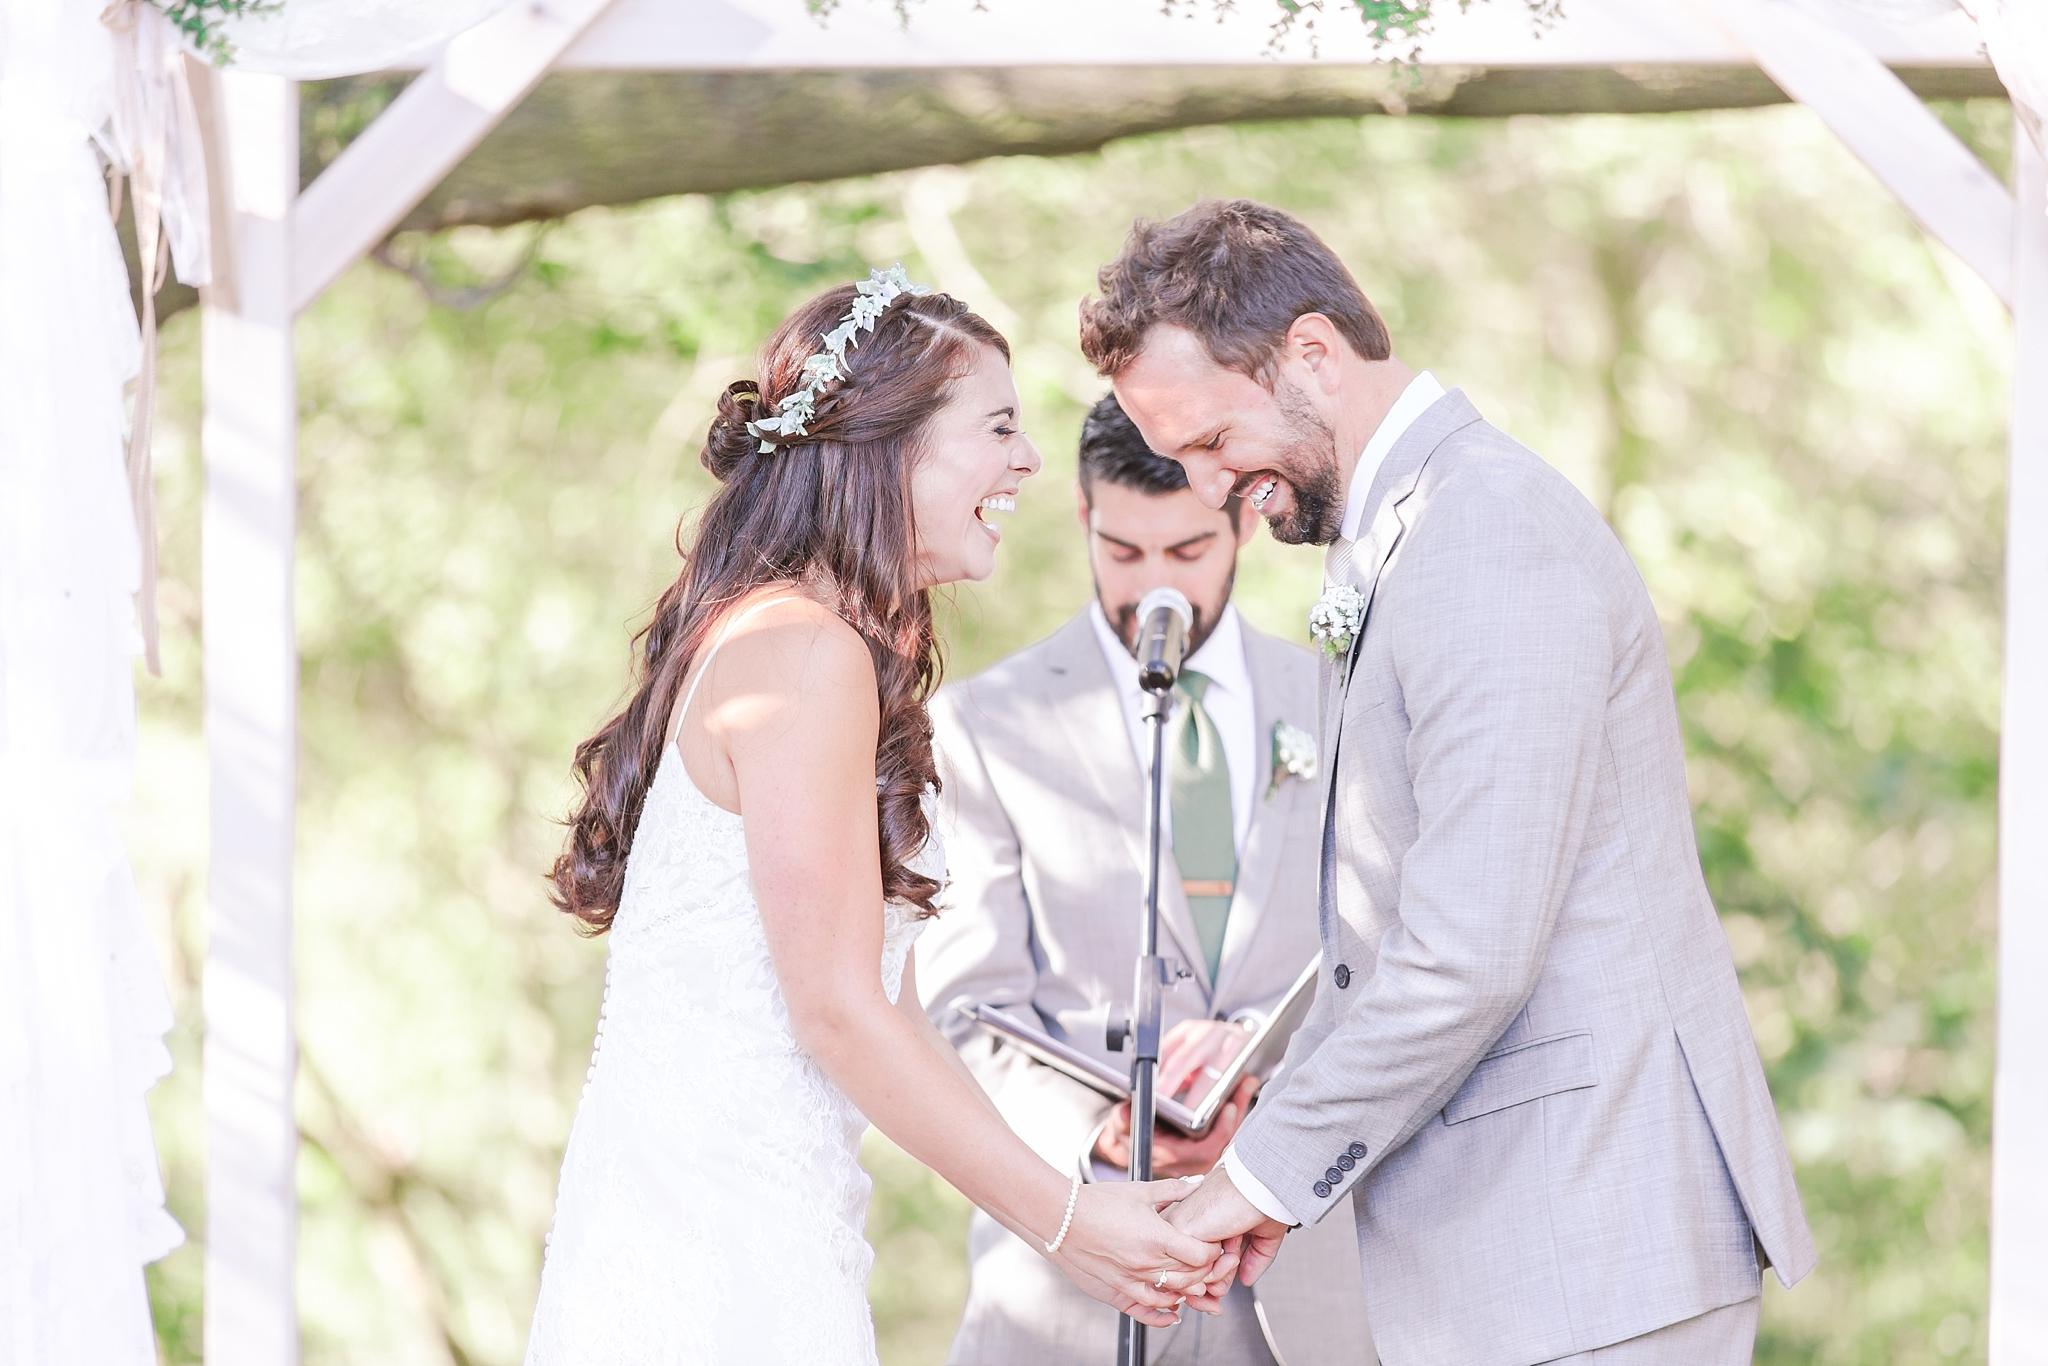 natural-rustic-wedding-photos-at-frutig-farms-the-valley-in-ann-arbor-michigan-by-courtney-carolyn-photography_0071.jpg